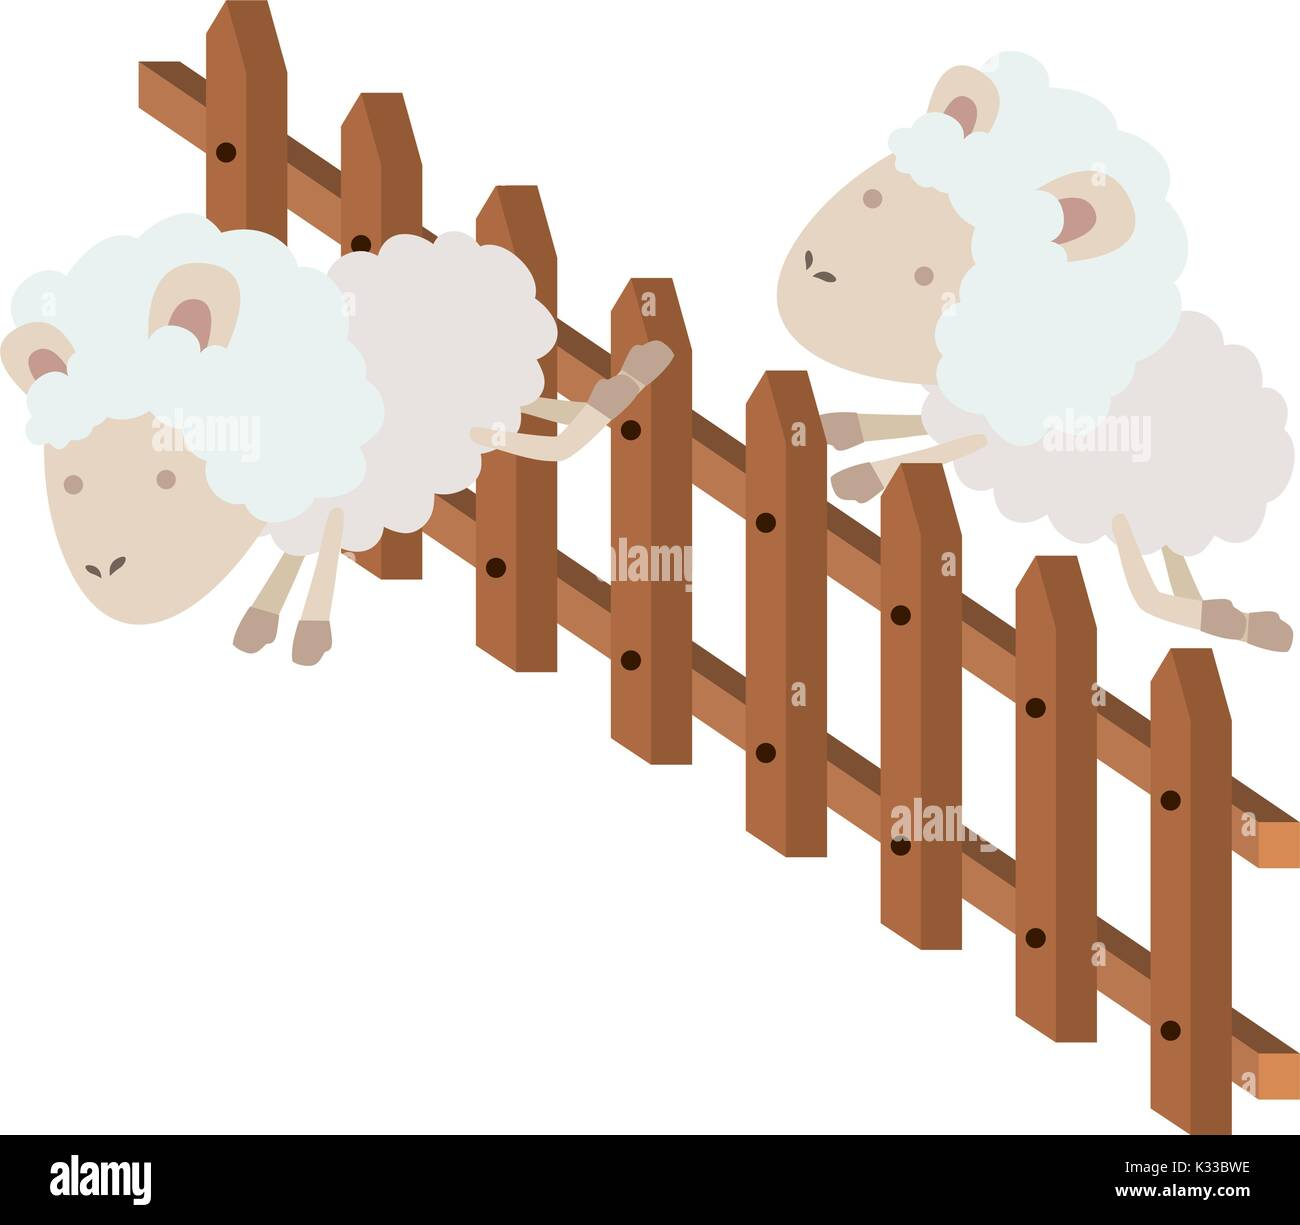 sheep animal couple jumping a wooden fence in colorful silhouette on white background - Stock Image